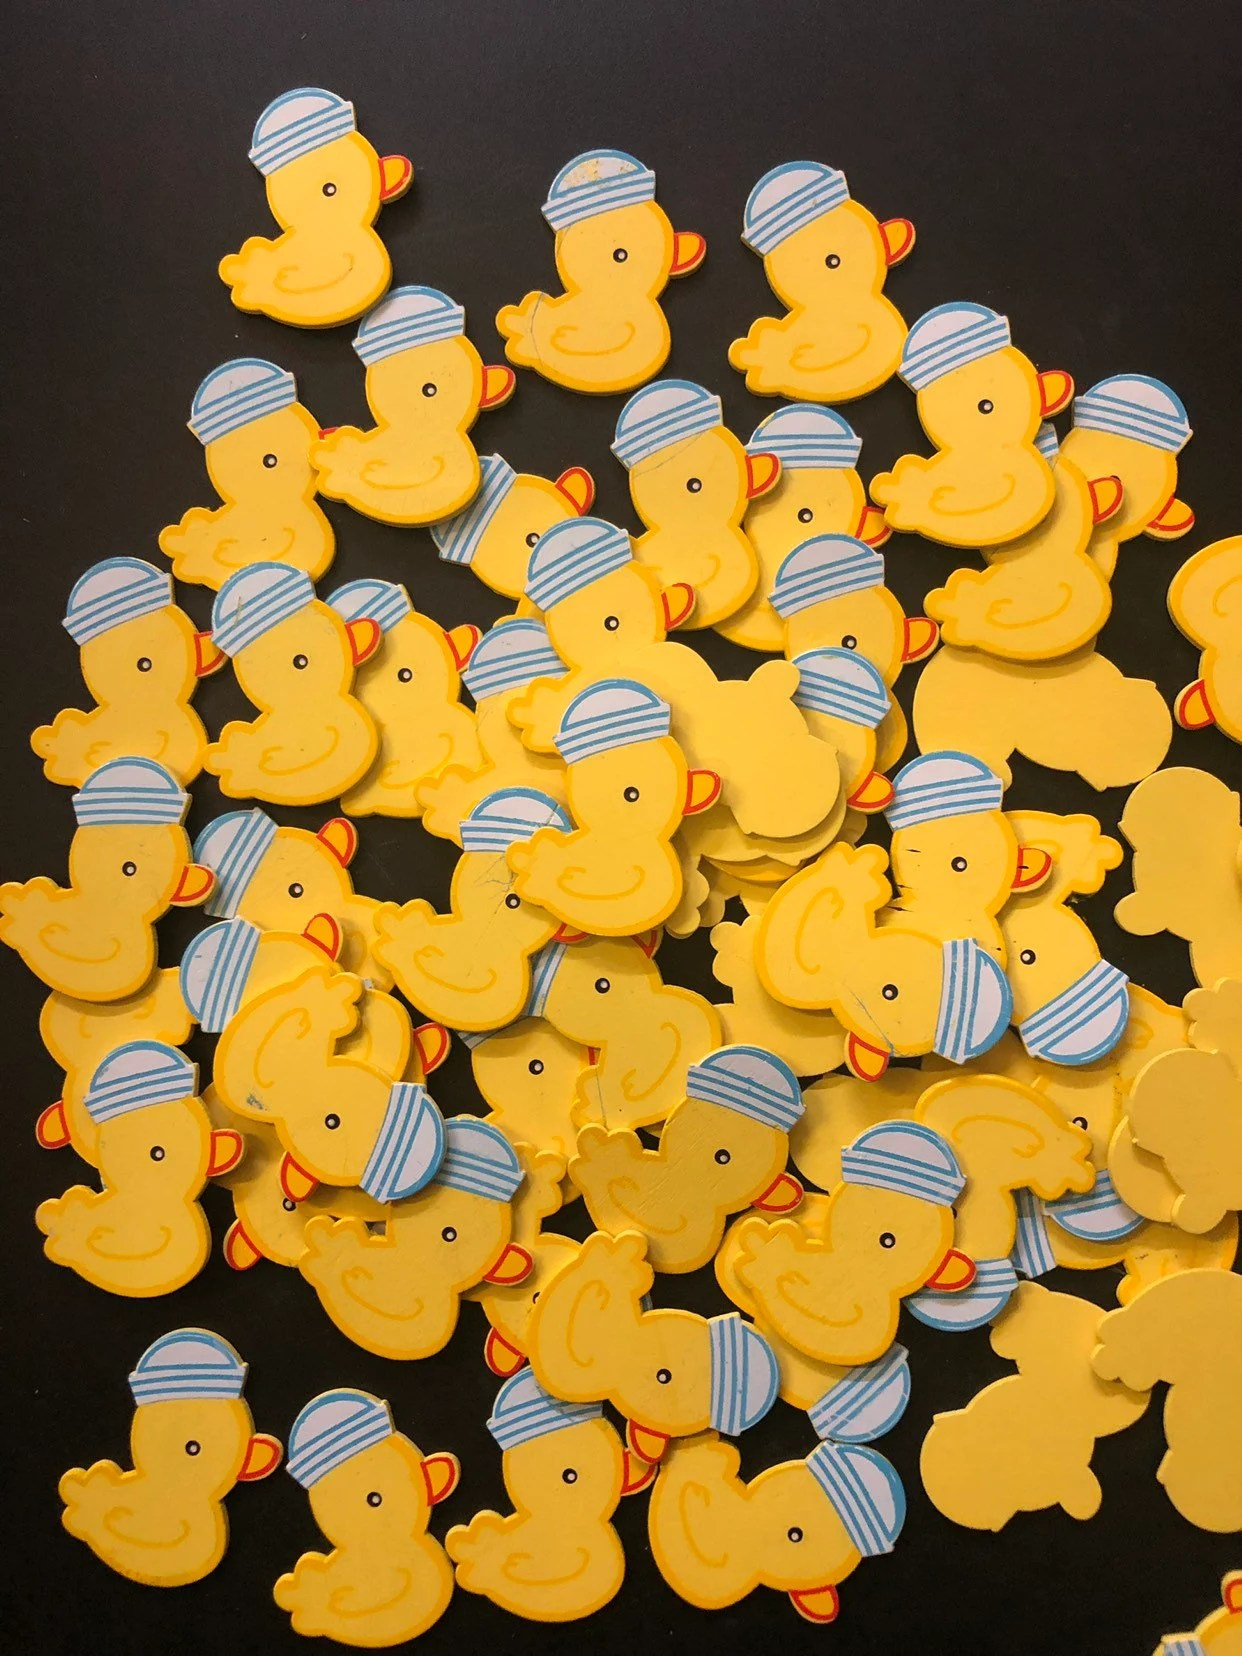 Wooden Duck Blue Hat 1 5 Inch Rubber Duck Party Duck Baby Shower Boy Baby Shower Duck Party Favor Zoo Forest Jungle Safari Theme